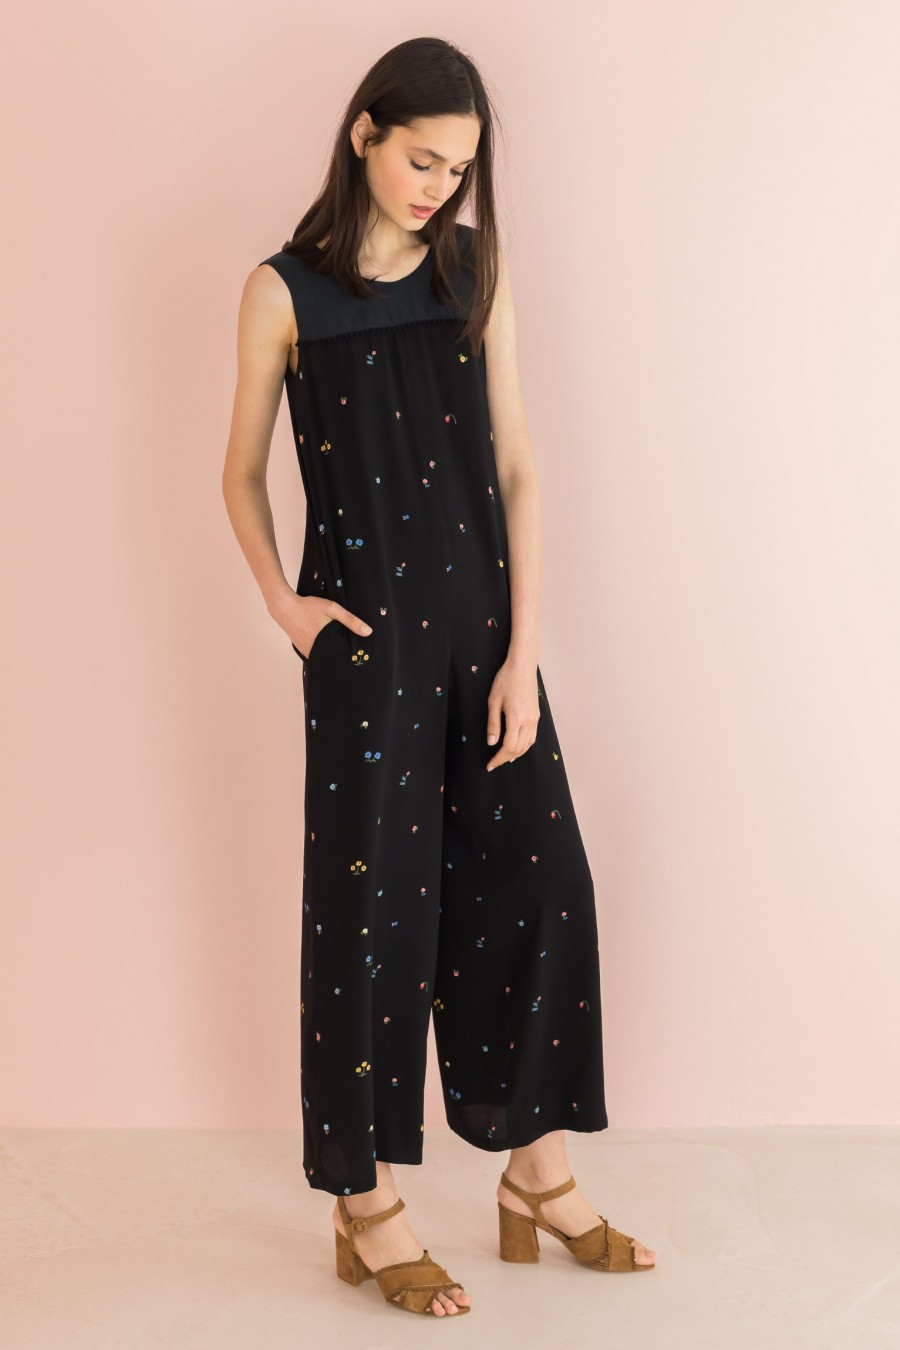 black jumpsuit with patterned